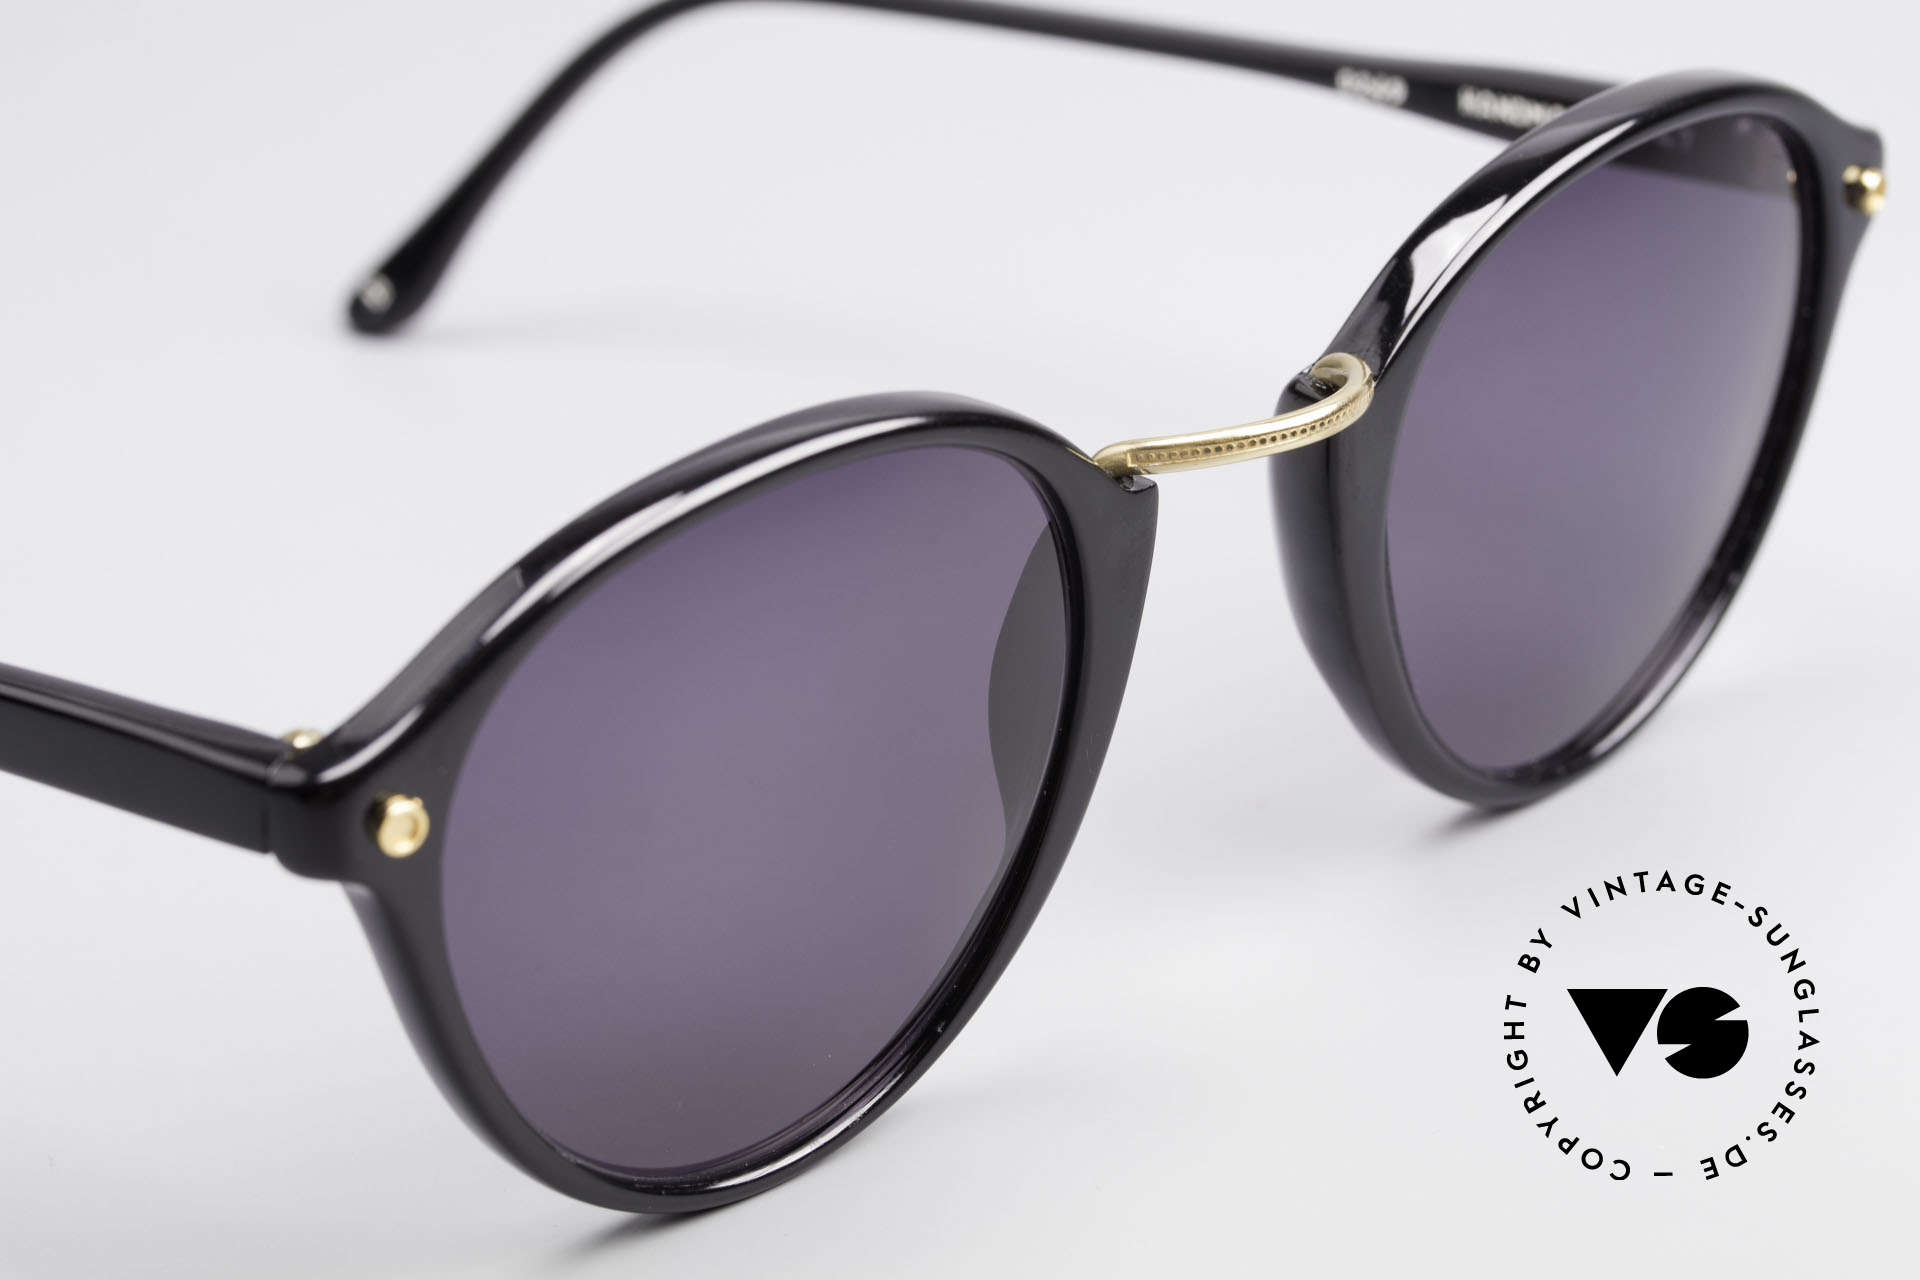 Cutler And Gross 0249 90's Panto Sunglasses Vintage, NO RETRO fashion, but a unique 20 years old Original!, Made for Men and Women